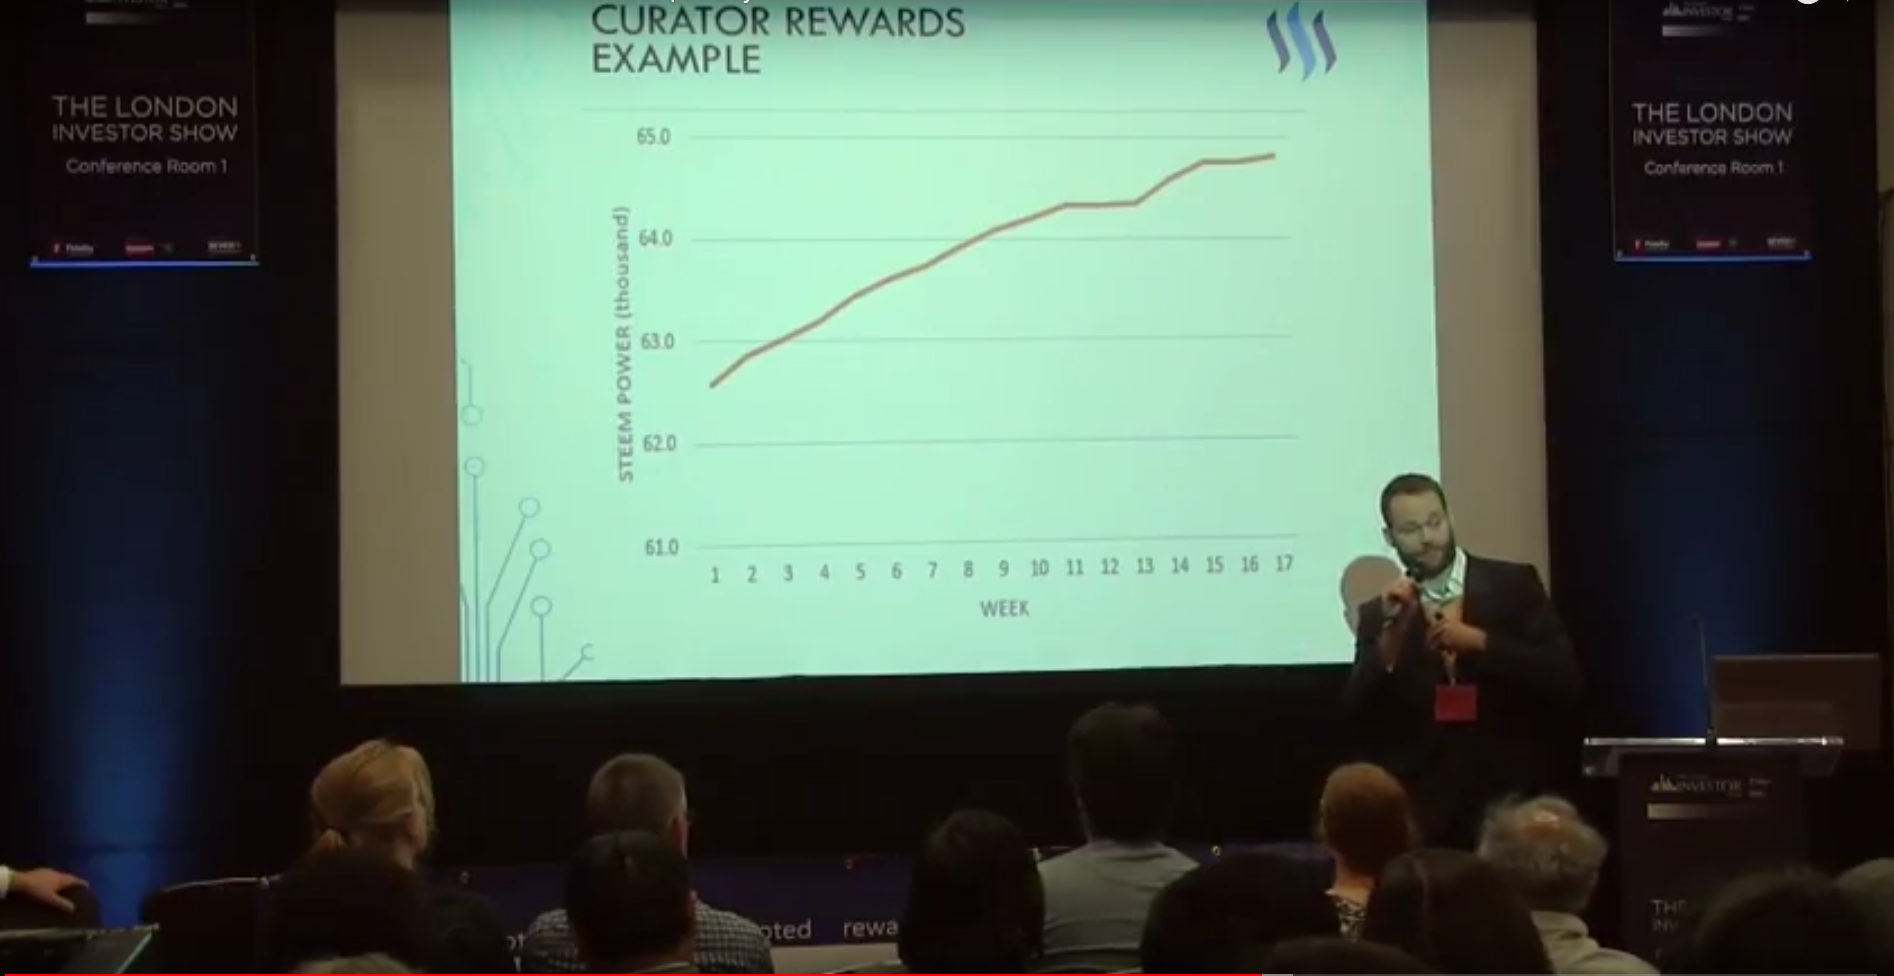 starkerz presenting steem at London Investors Show 2017 Promo-steem.png